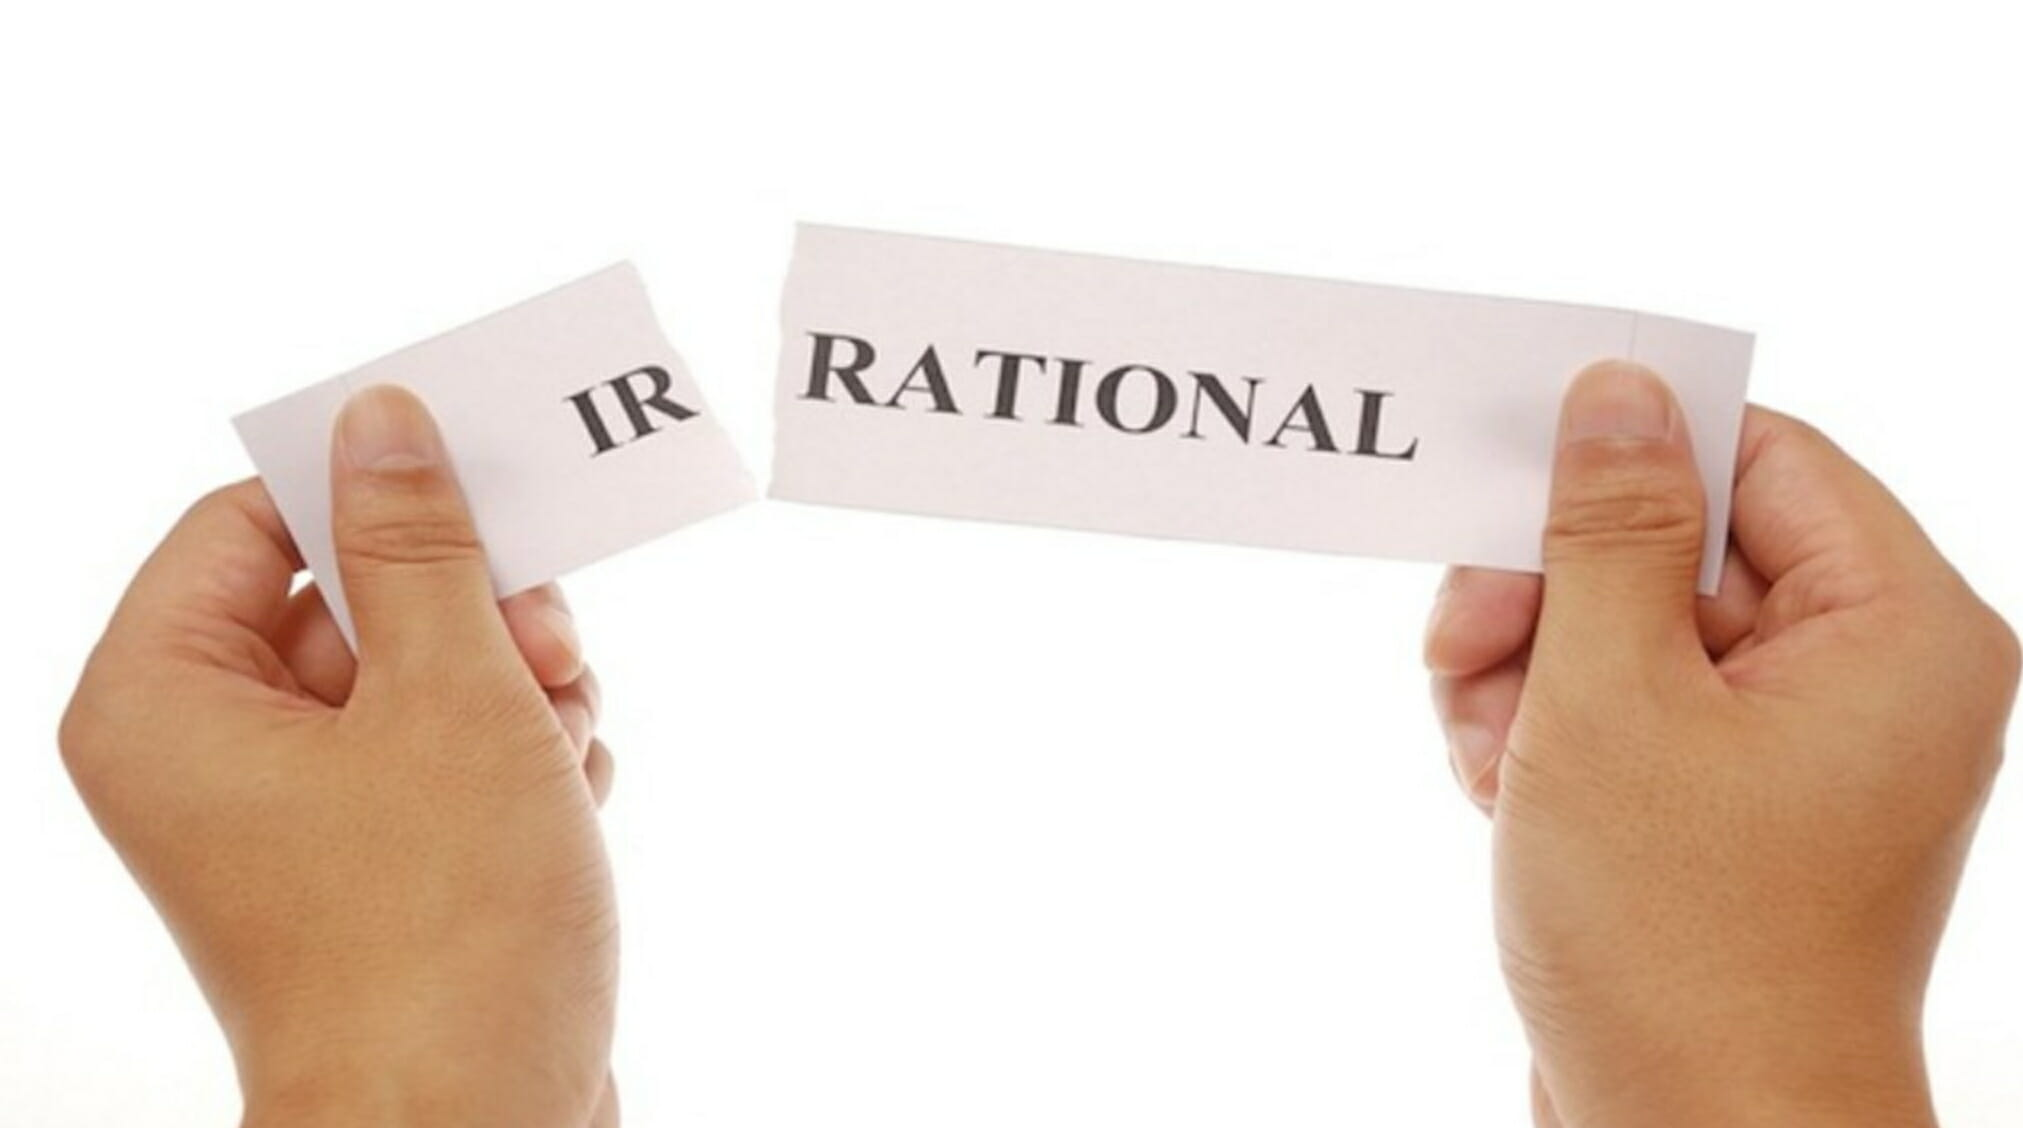 Not Rational